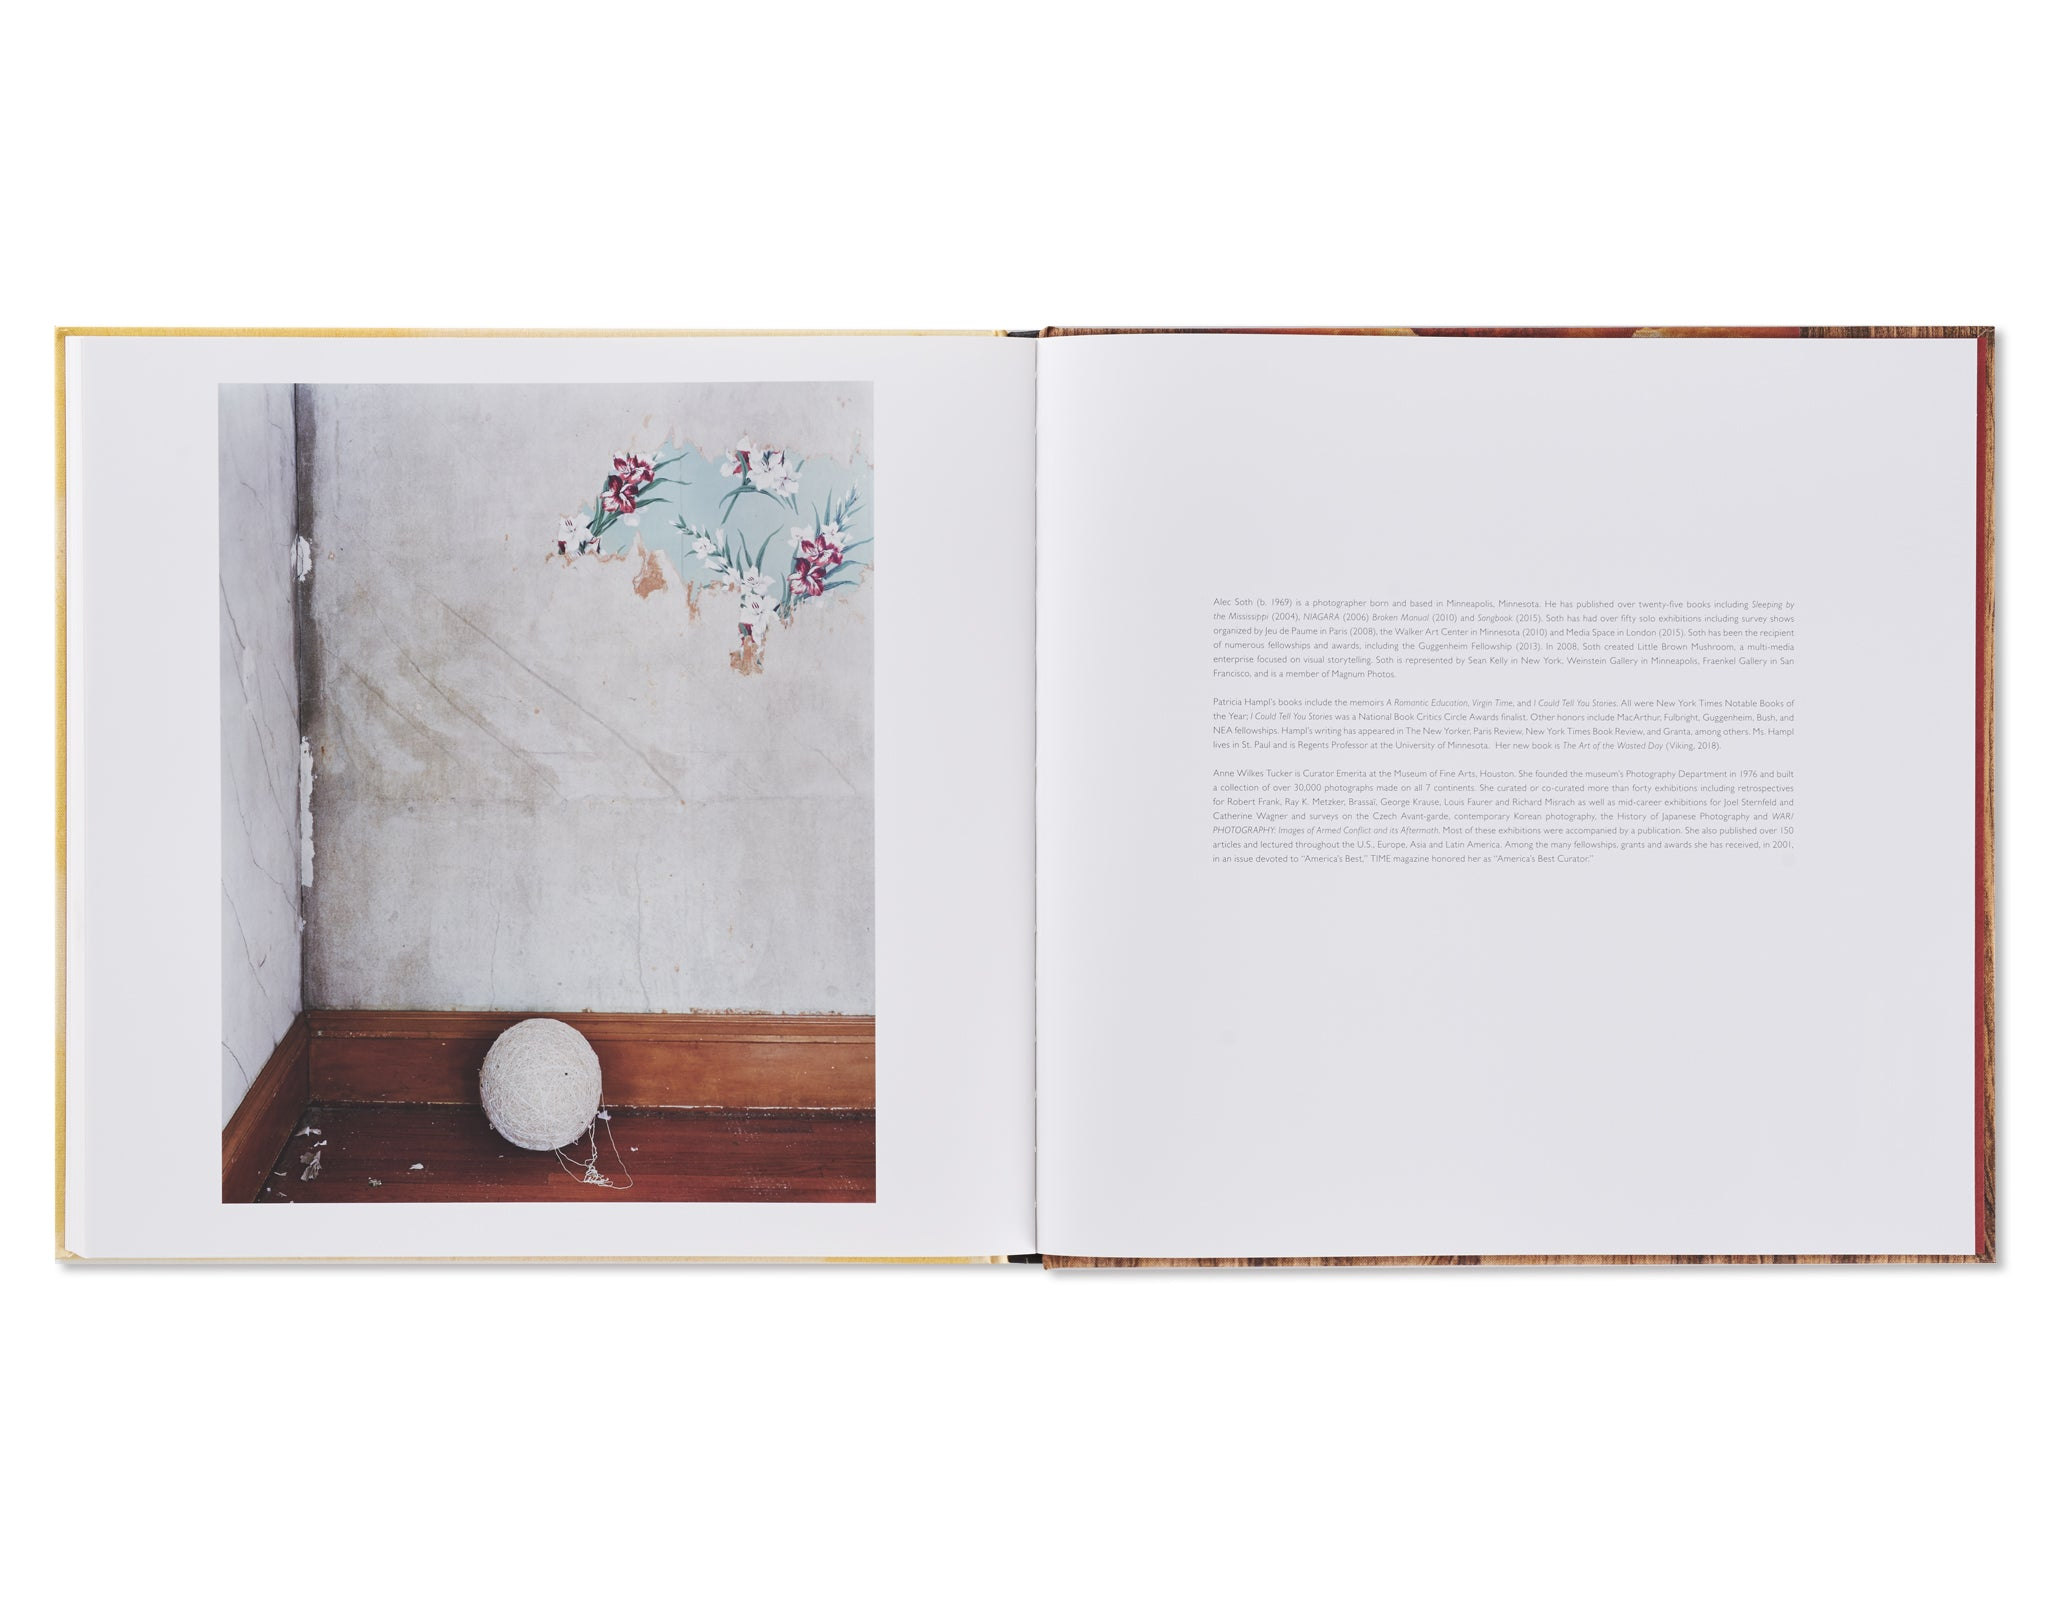 SLEEPING BY THE MISSISSIPPI by Alec Soth [SIGNED]